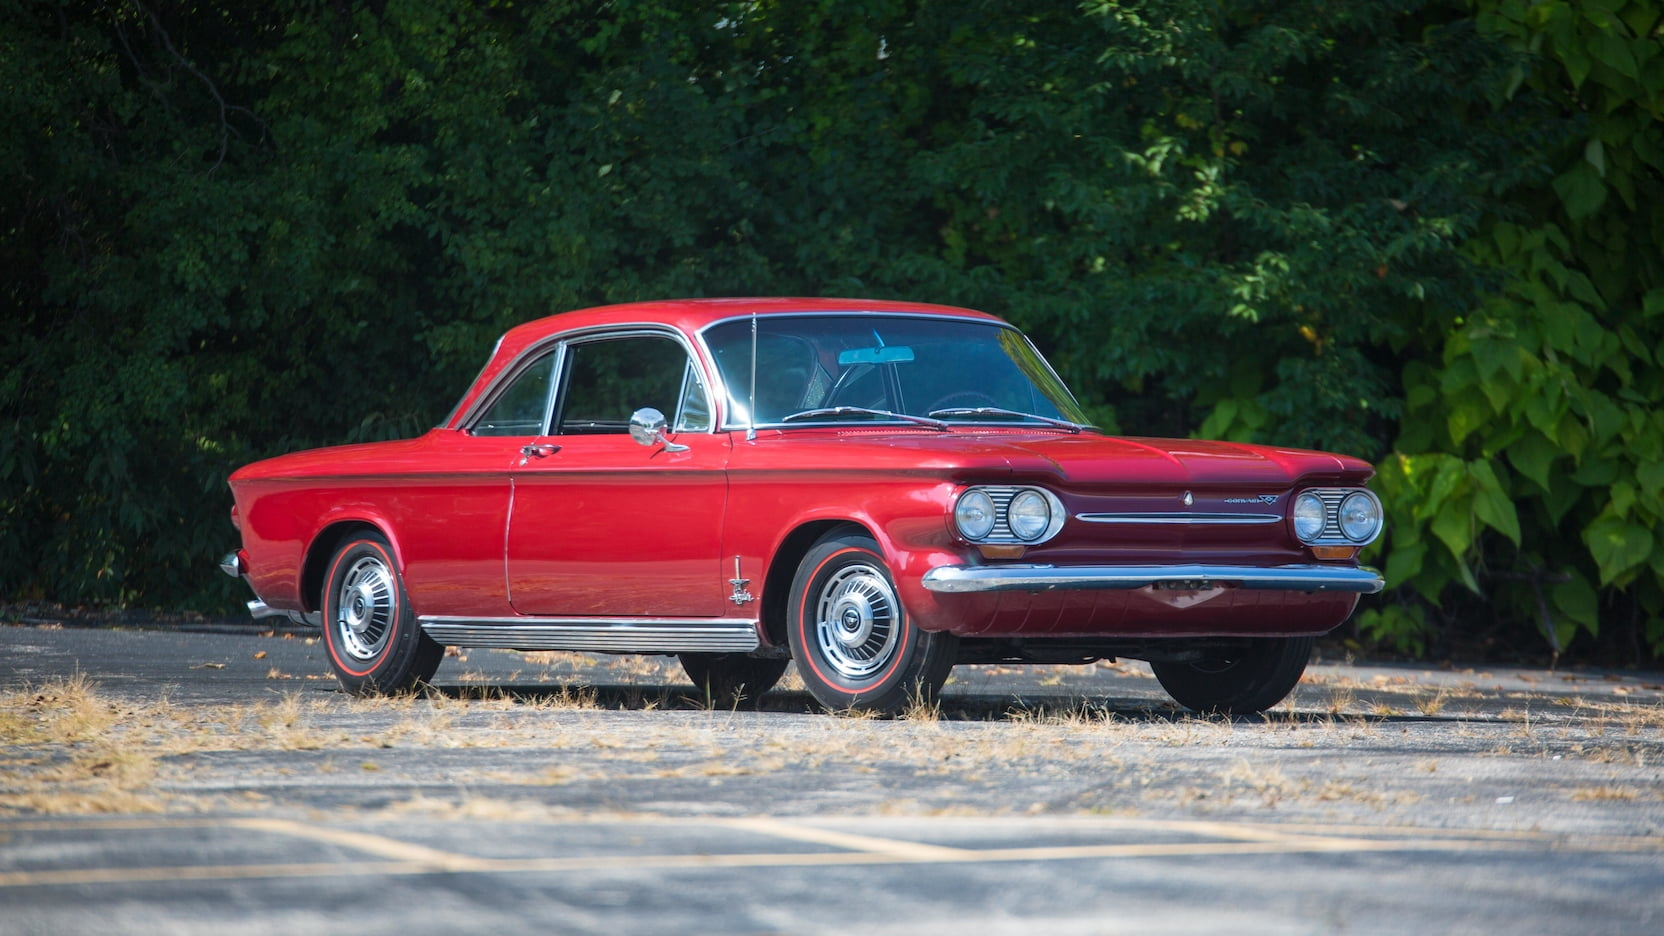 1963 Chevrolet Corvair front 3/4